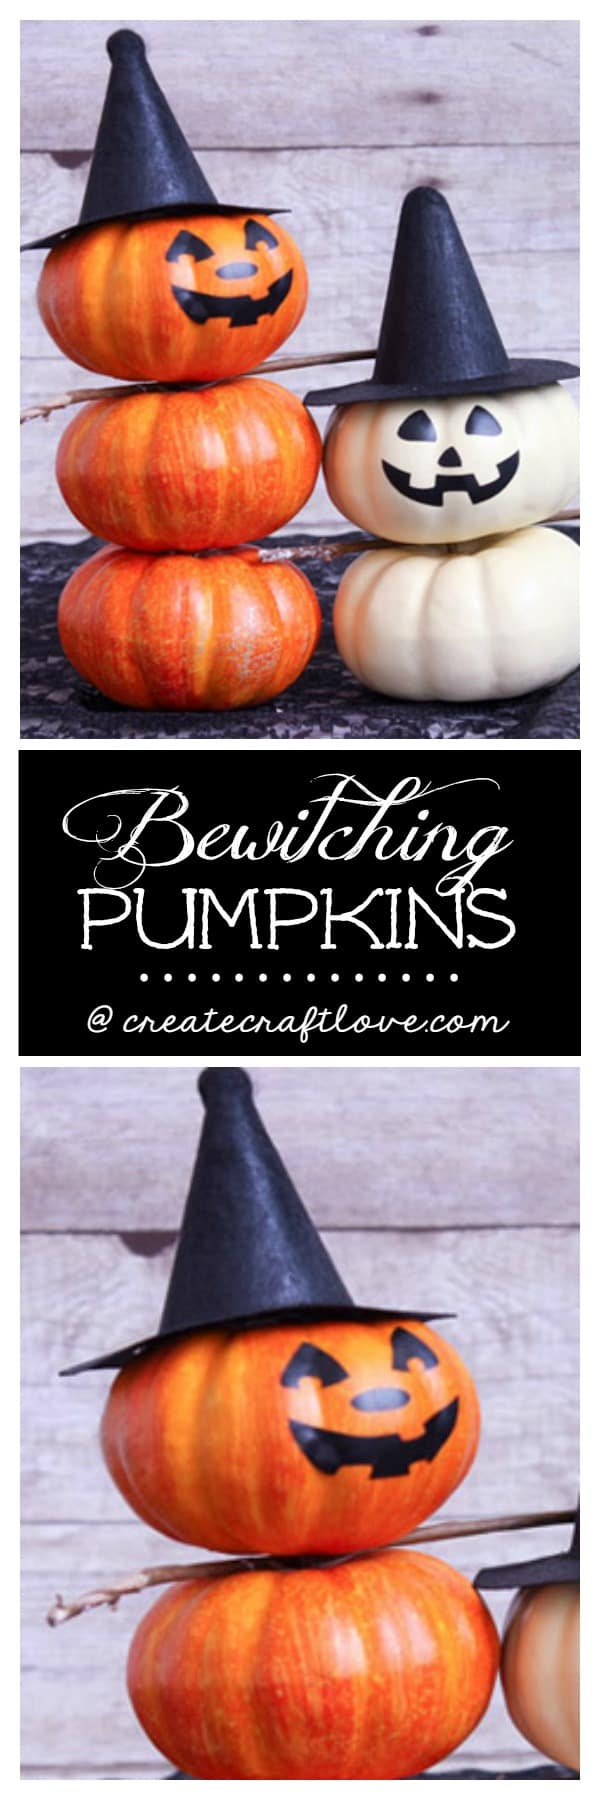 These Bewitching Pumpkins are a great Halloween decor idea!